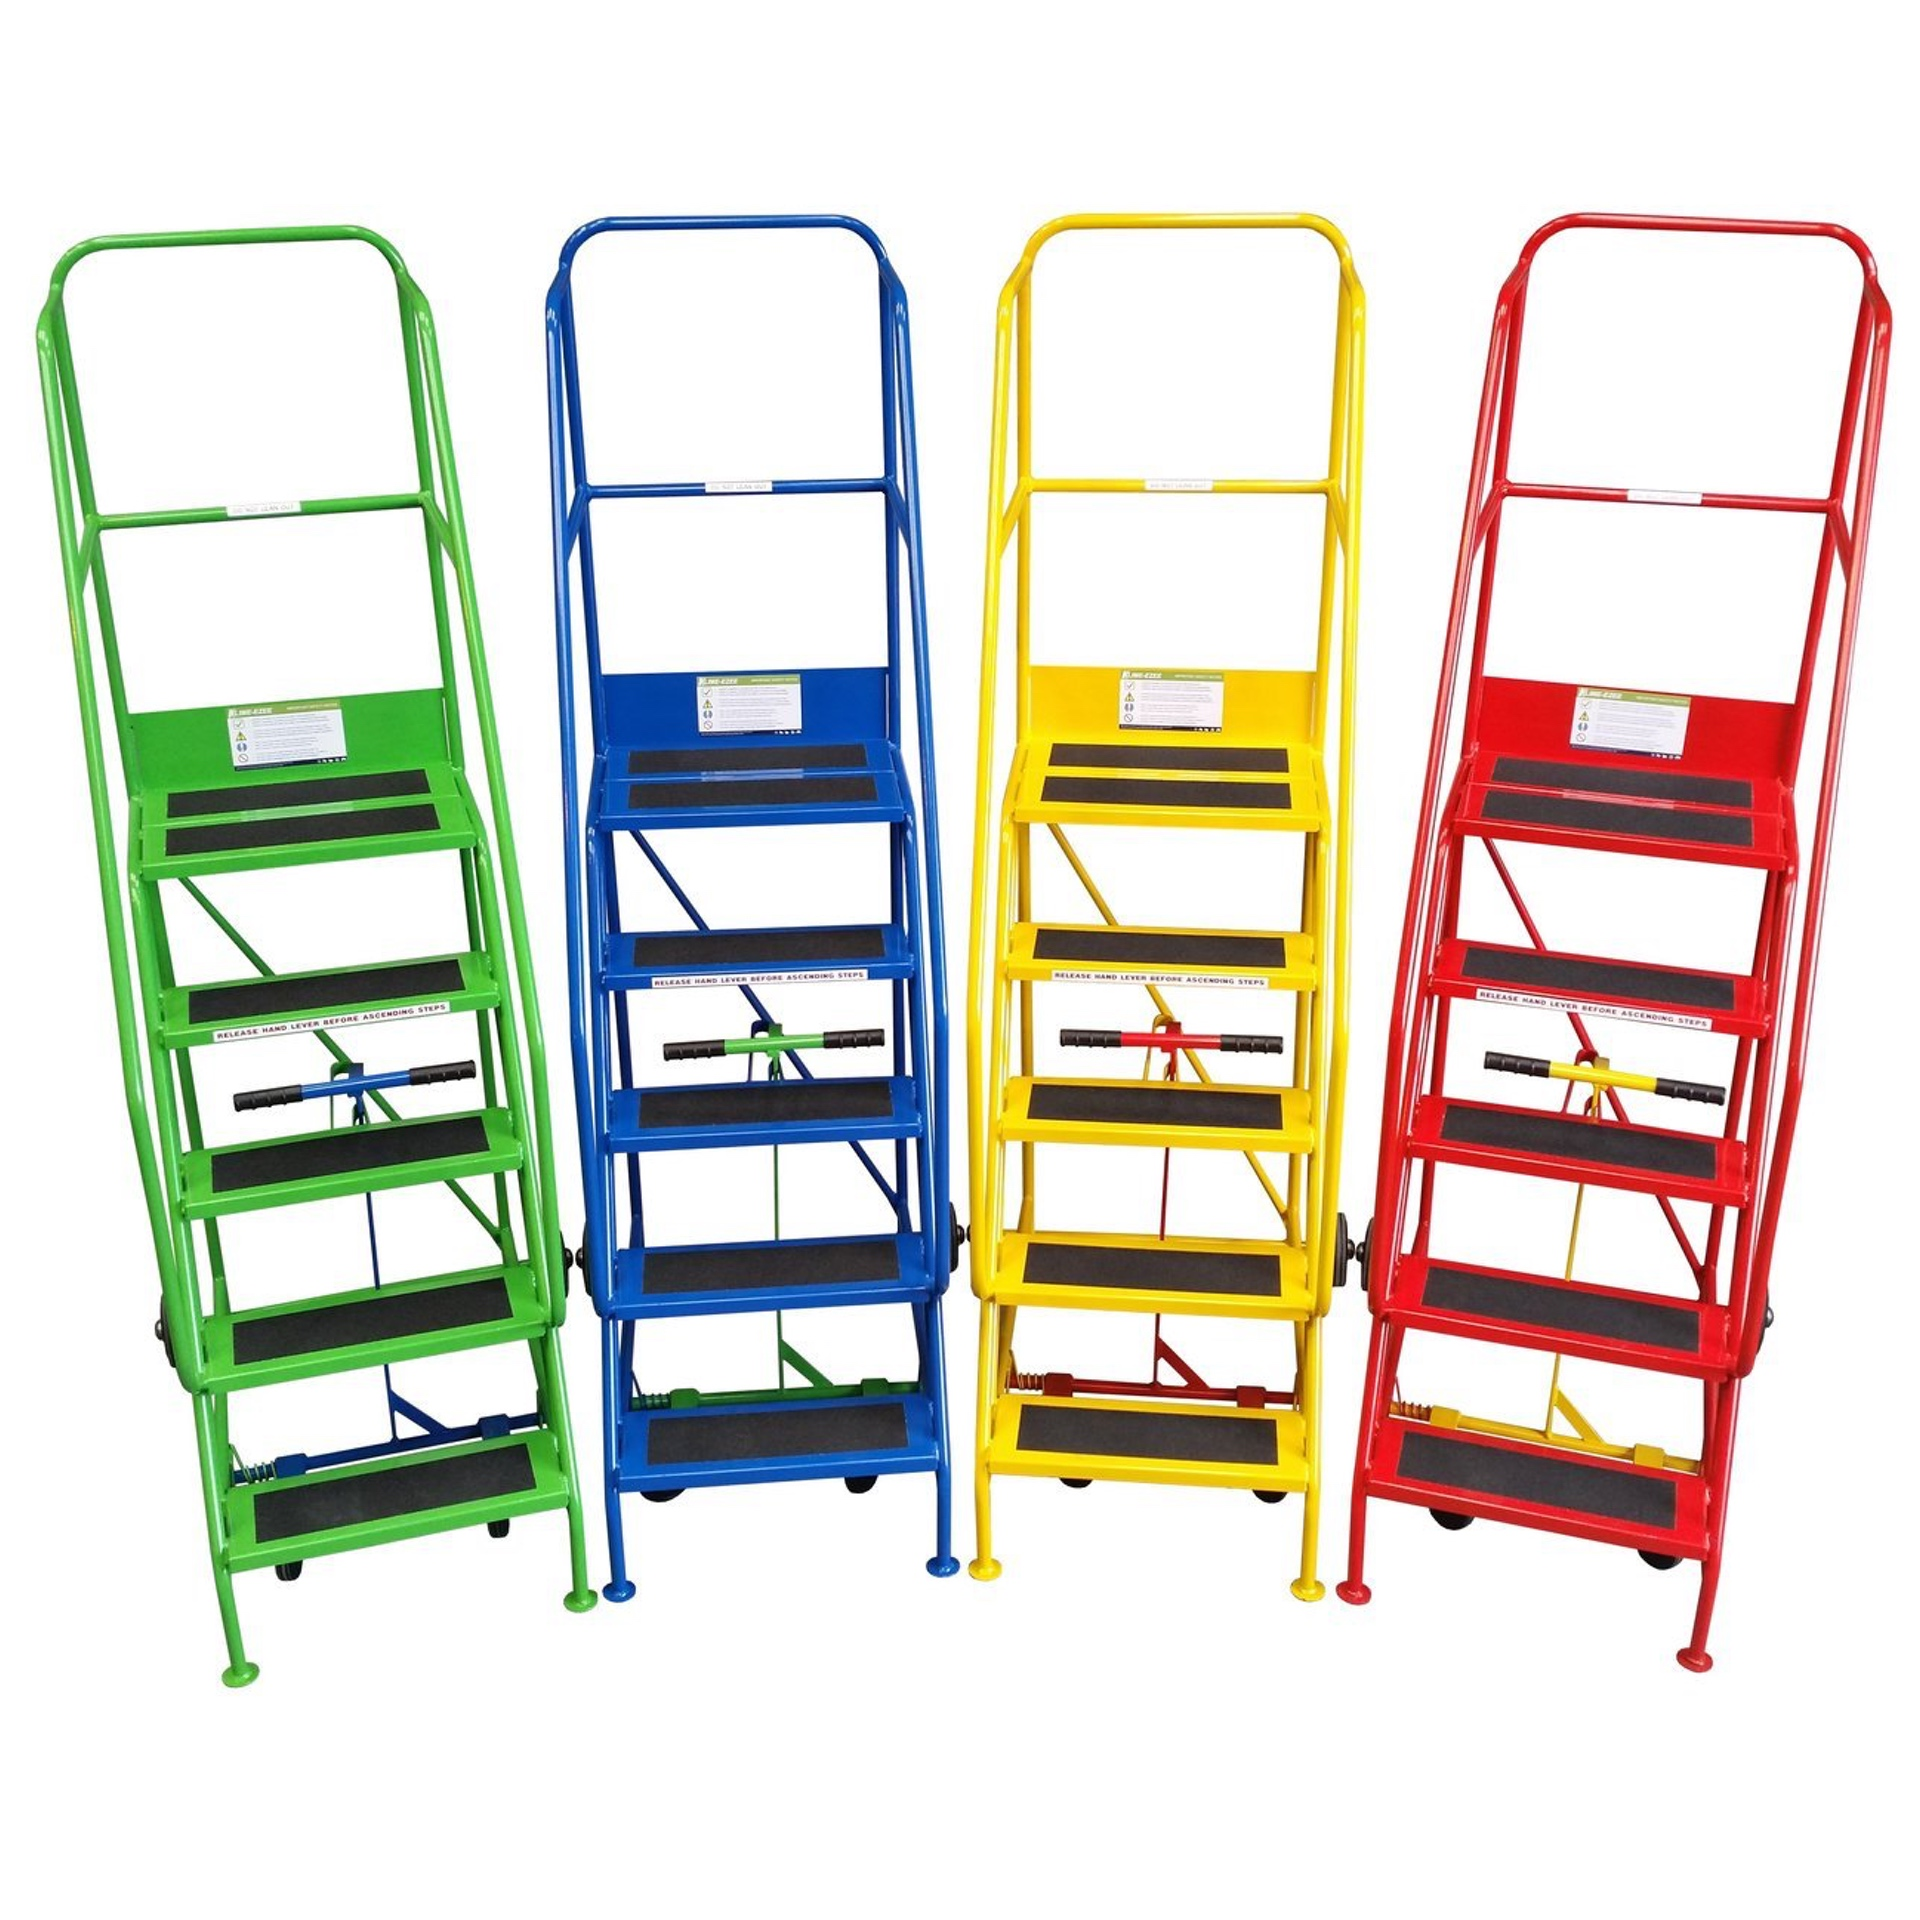 We also sell lockers, warehouse steps and specialist cabinets